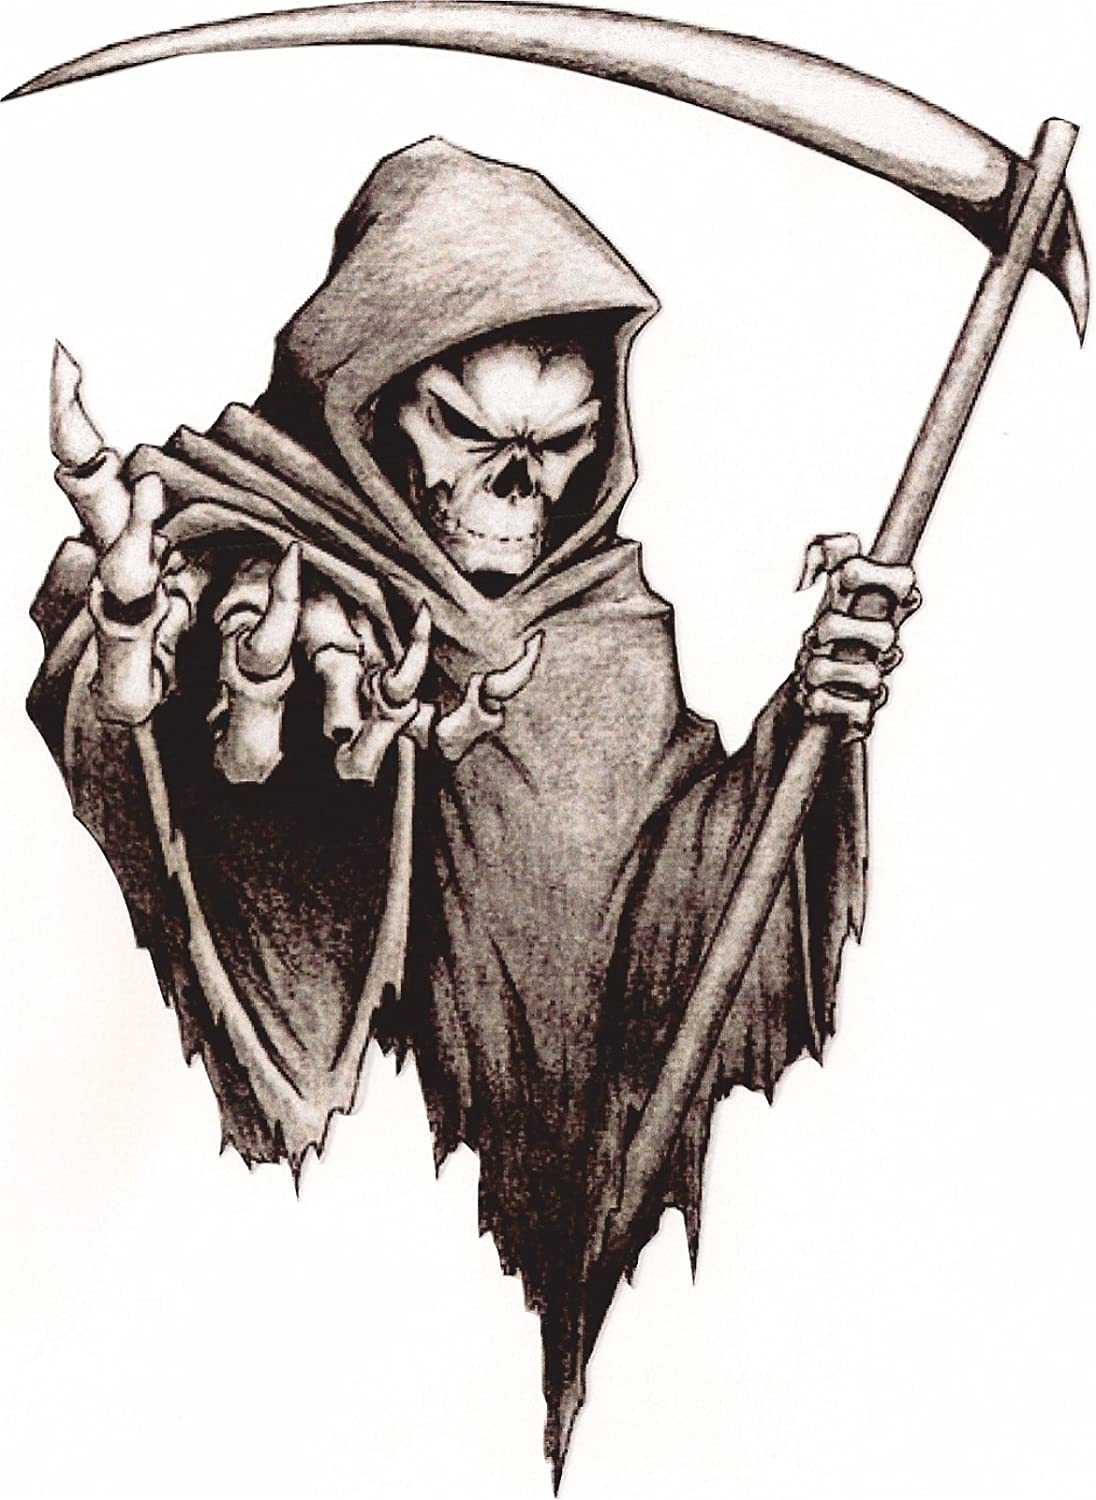 Vinyl sticker/decal Medium 120mm grim reaper - facing right Graphic Effects